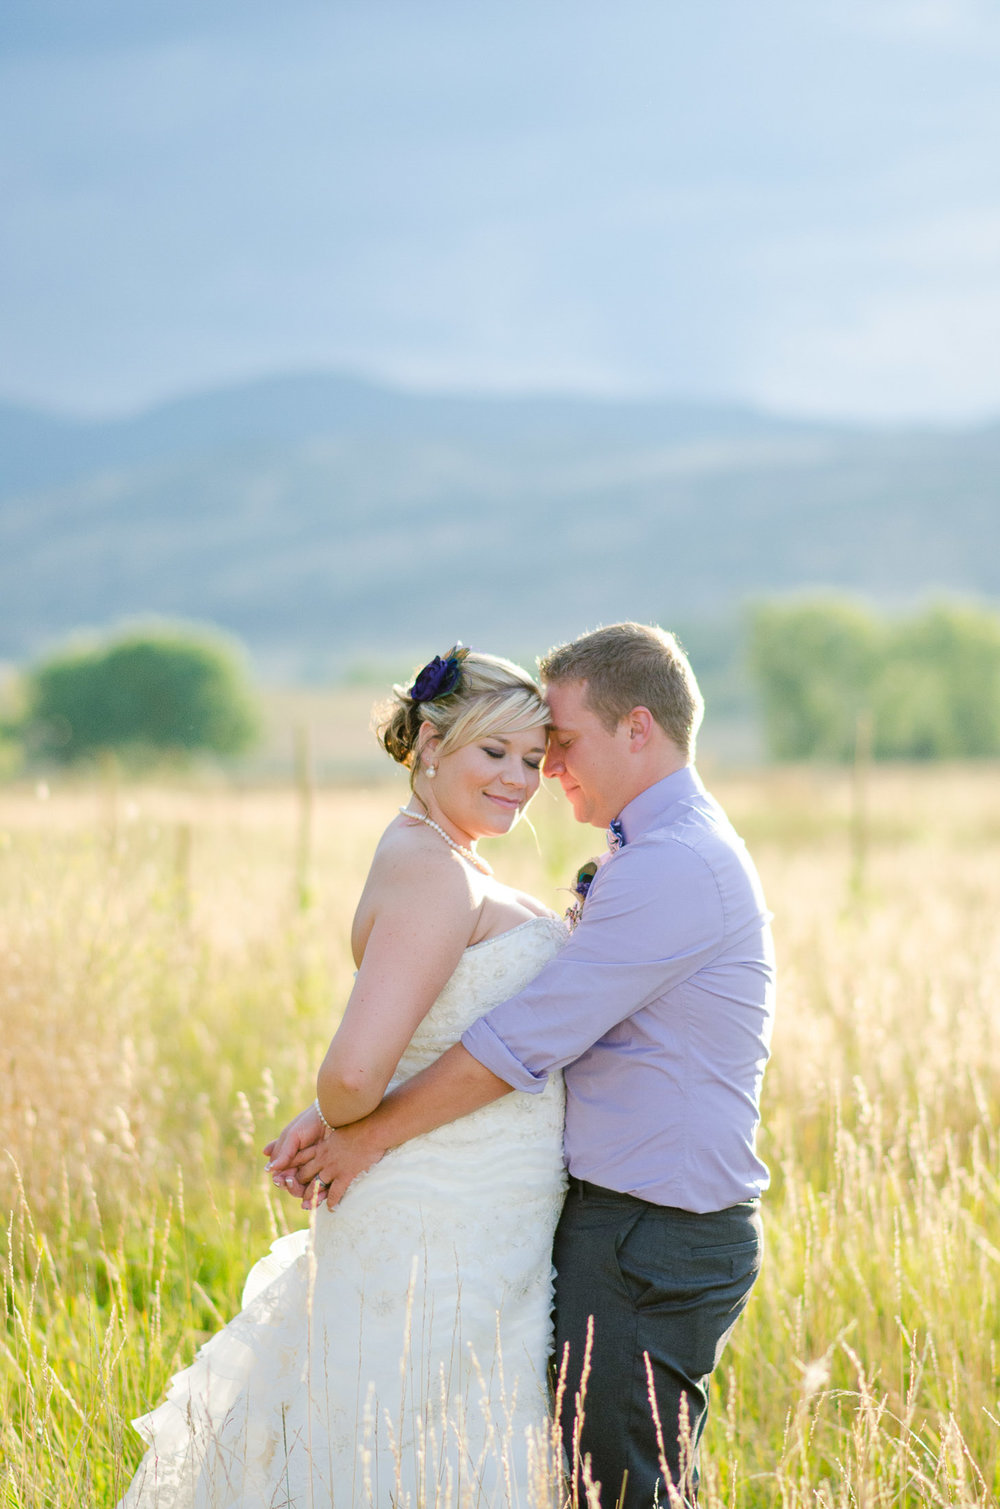 152elopement-photographer-colorado-shupe_homestead_wedding_jessica_andrew_2233.jpg